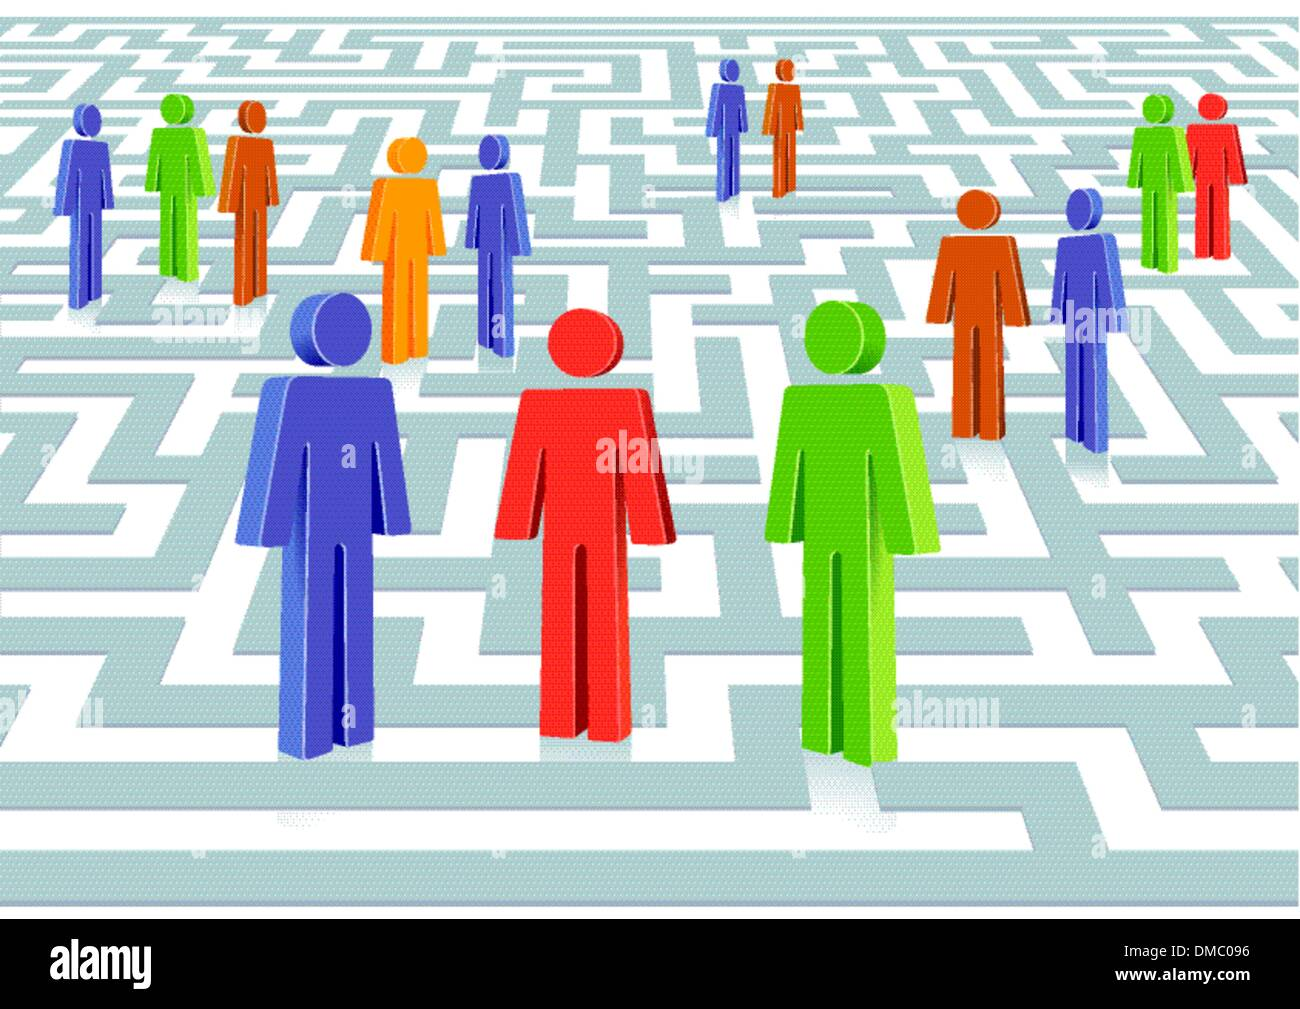 Strategy Vectors Stock Photos & Strategy Vectors Stock Images - Alamy